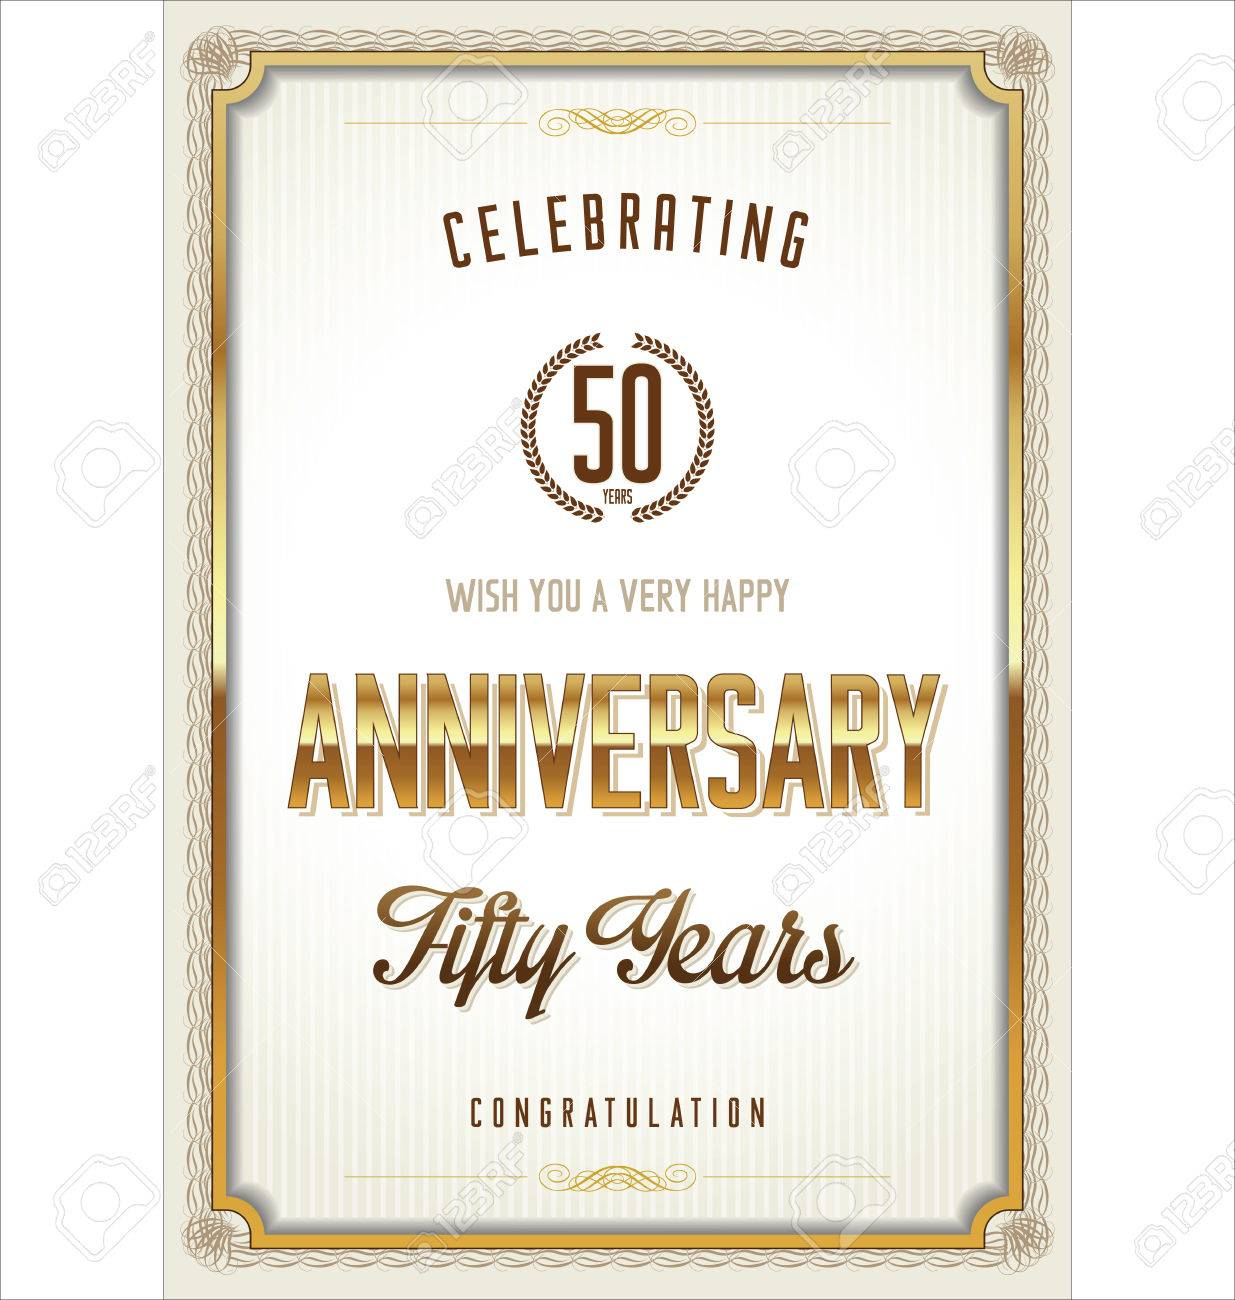 Anniversary Certificate Template Within Anniversary Certificate Template Free